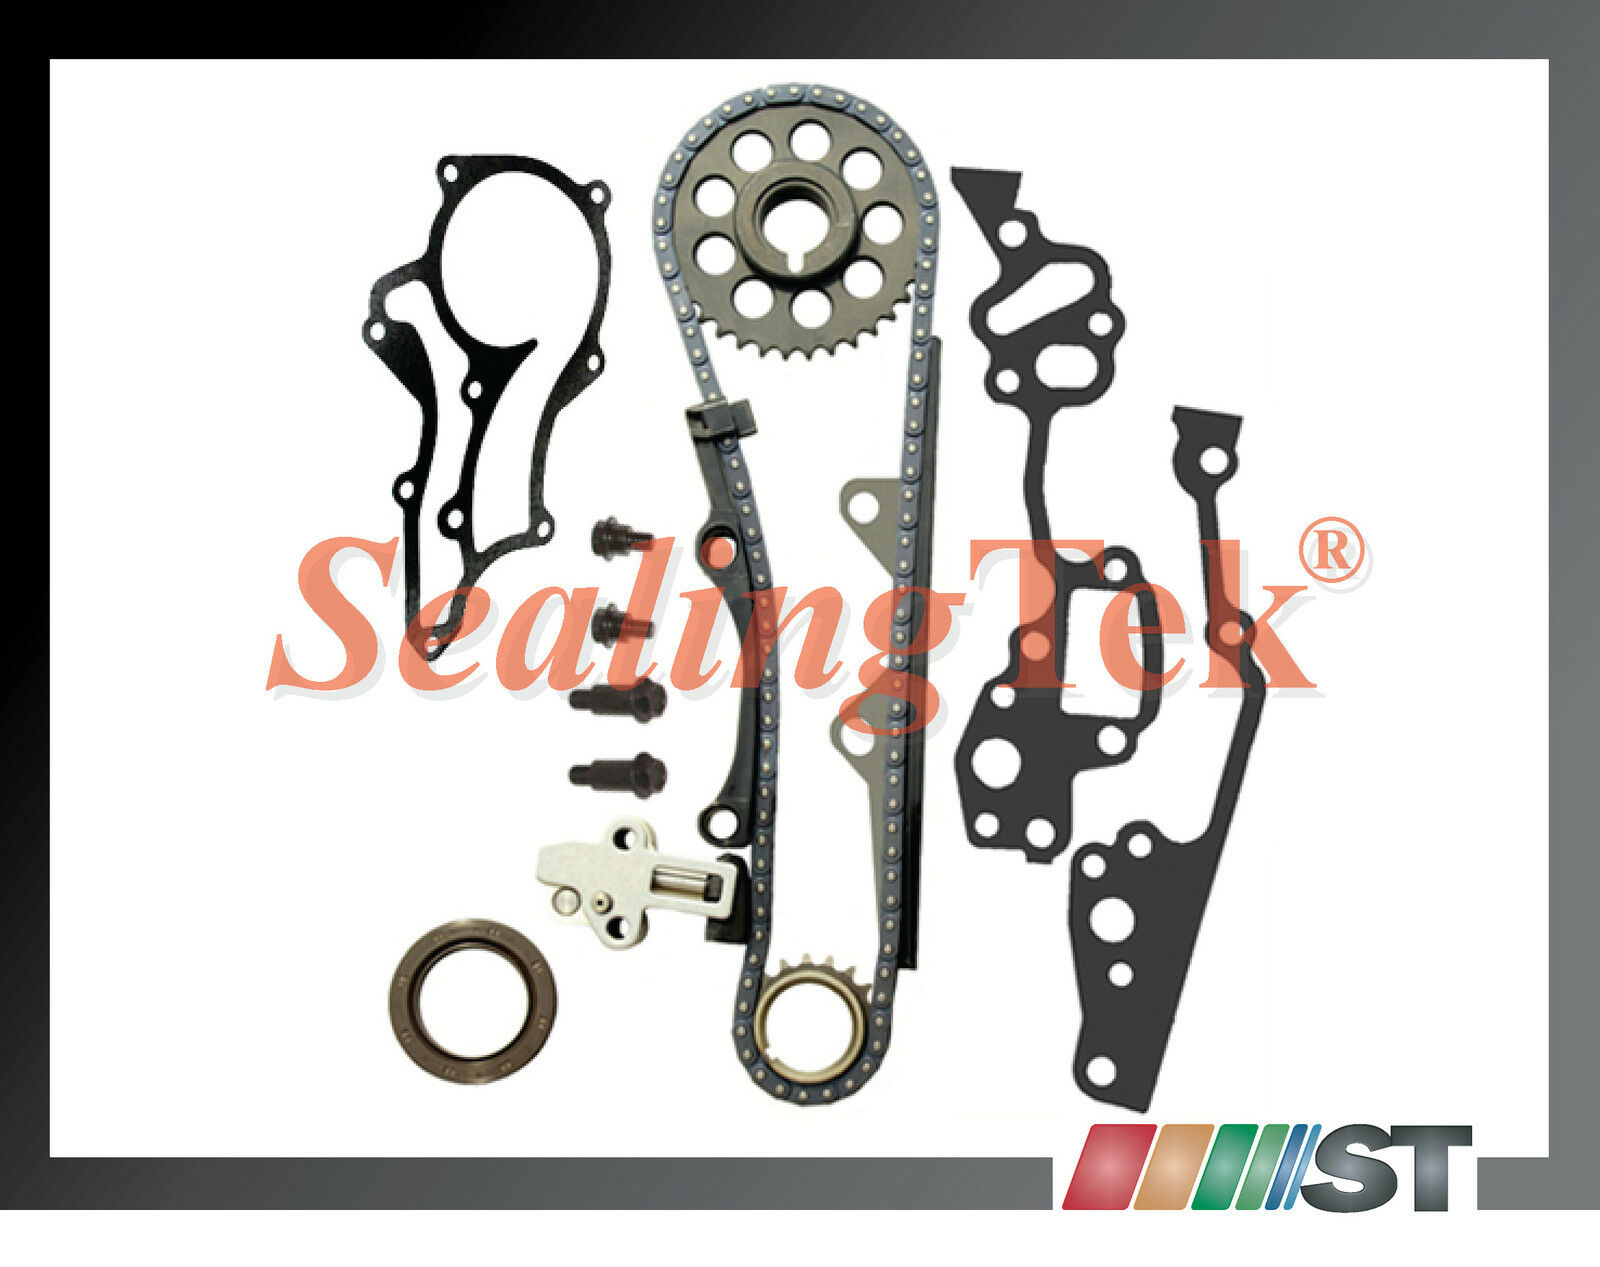 5vz Oem 34 Reconditioned Cylinder Head 955 04 further 96 Toyota 4runner 3 4 Engine Diagram moreover P 0900c152800544a8 also 106608716155595952 moreover 160619572912. on bolts 22re timing